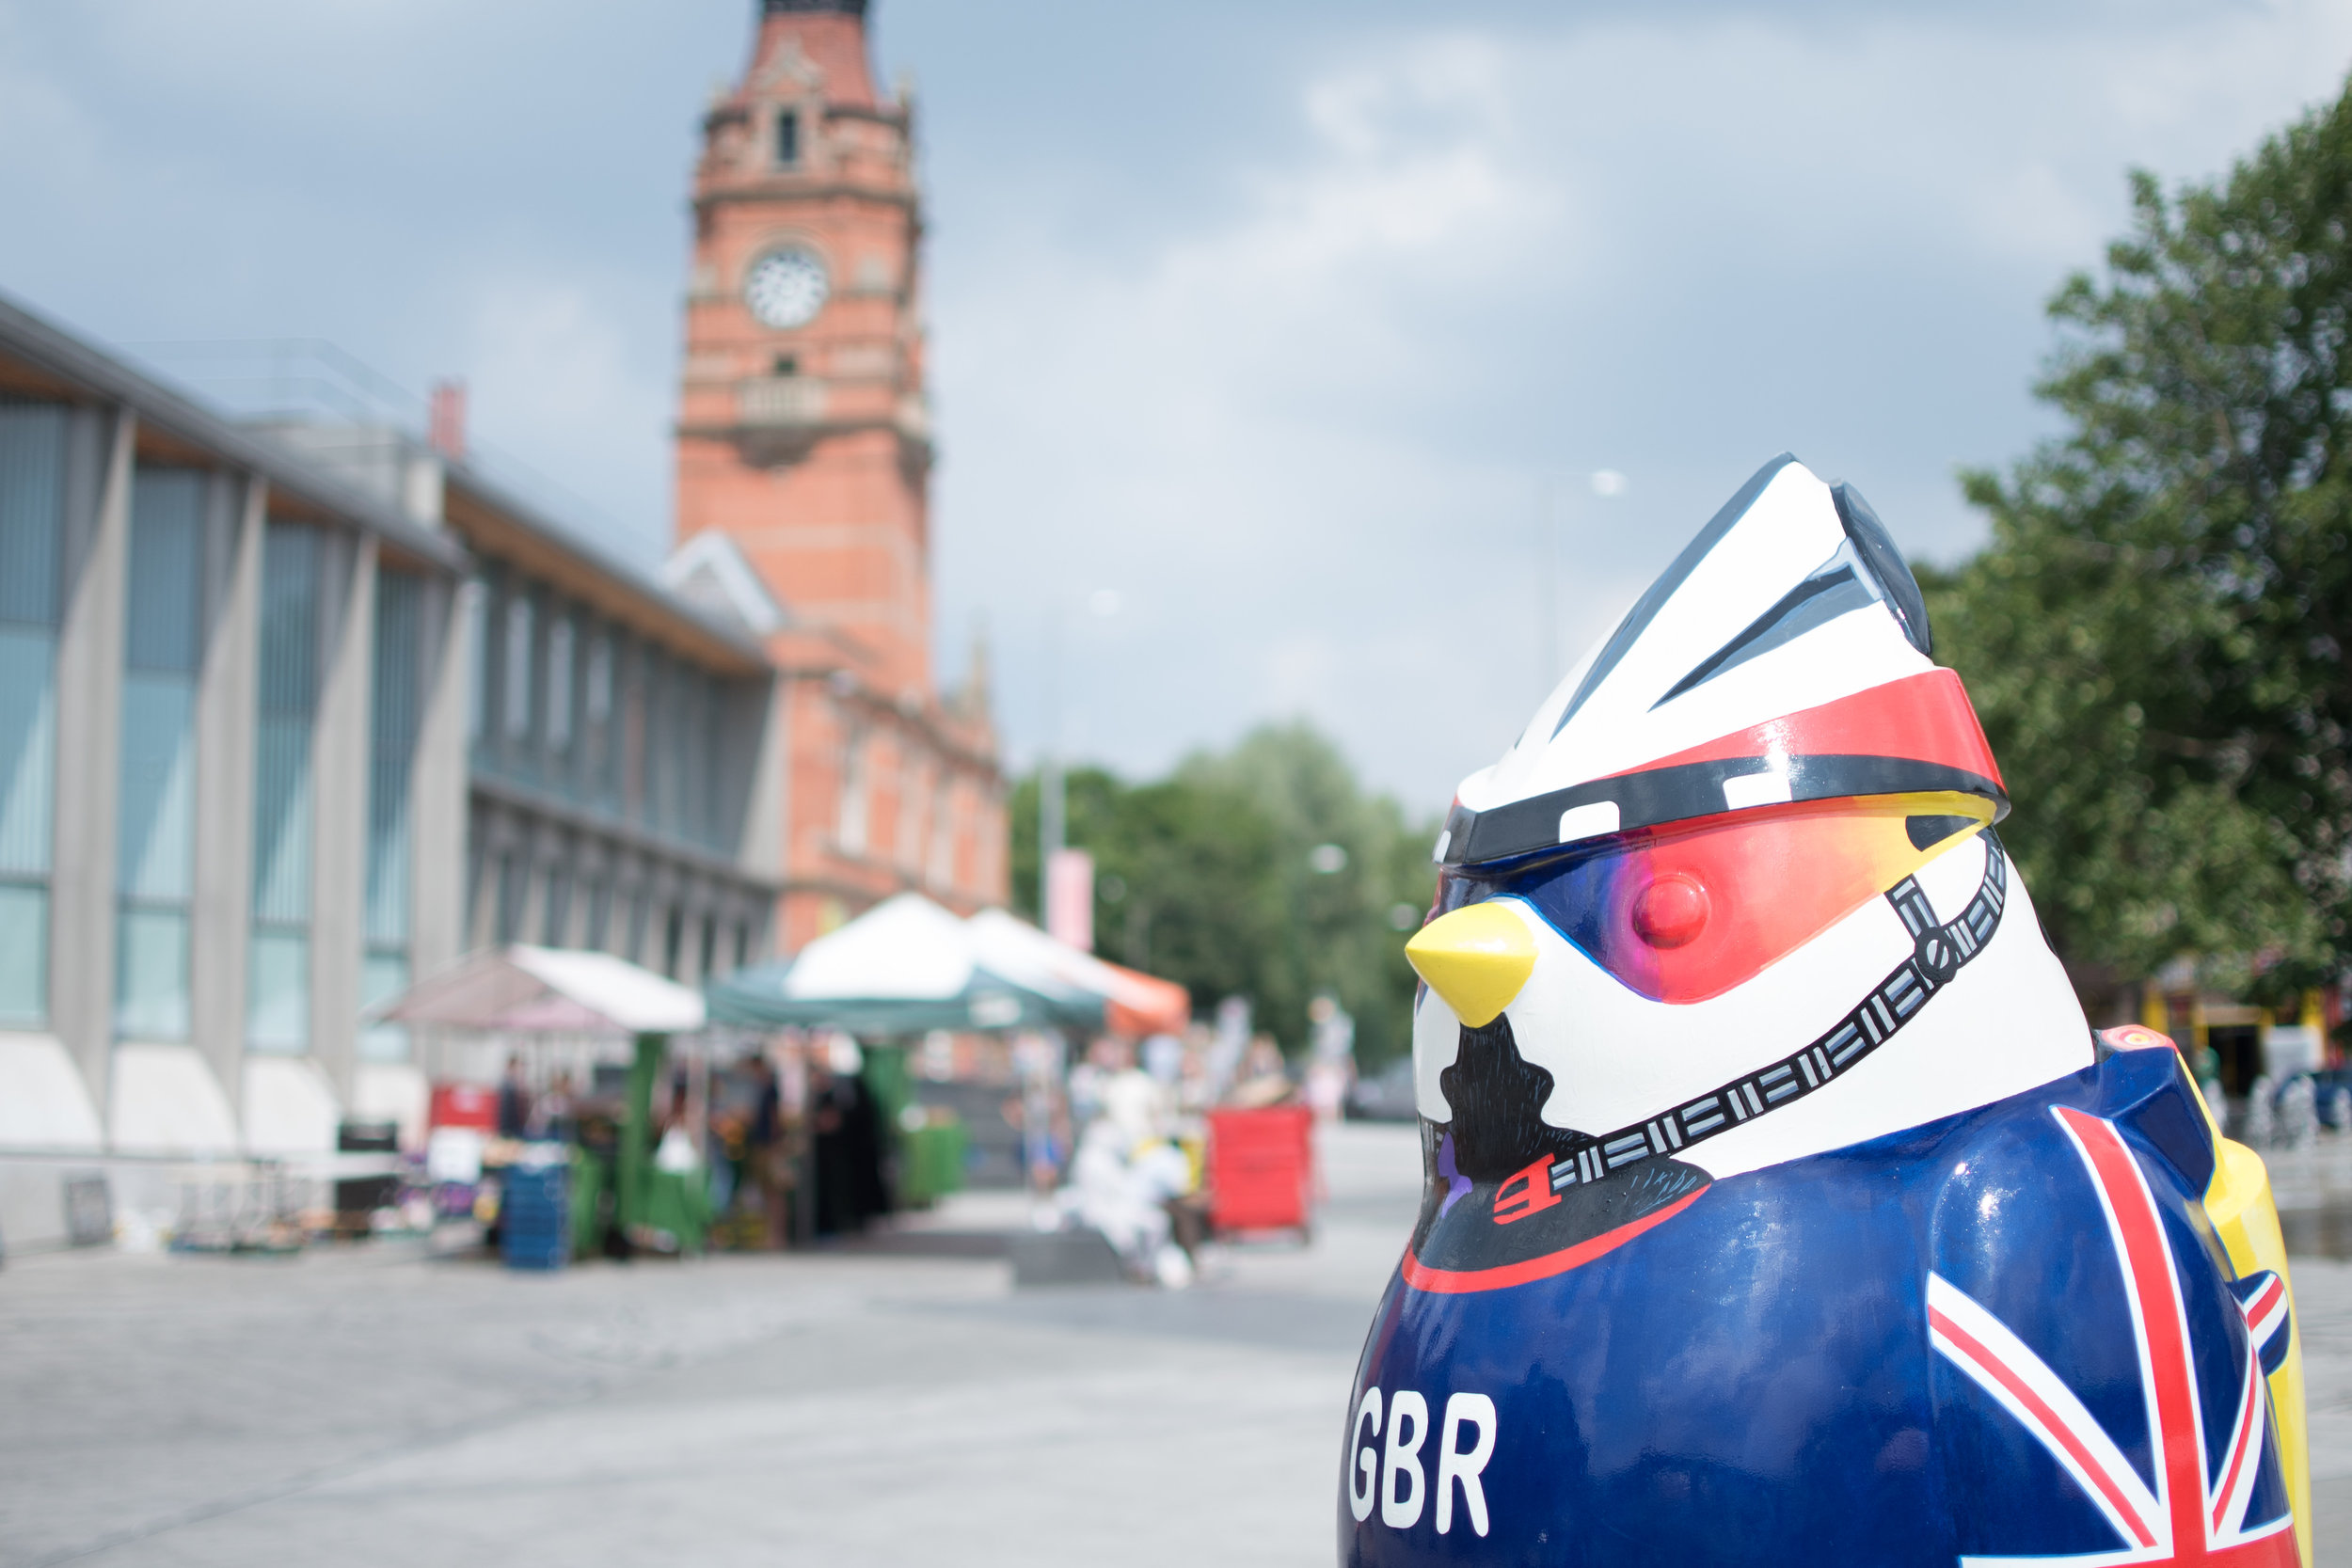 Pop on down to Nottingham's Hoodwinked trail to find all the quirky Robin Hood statues